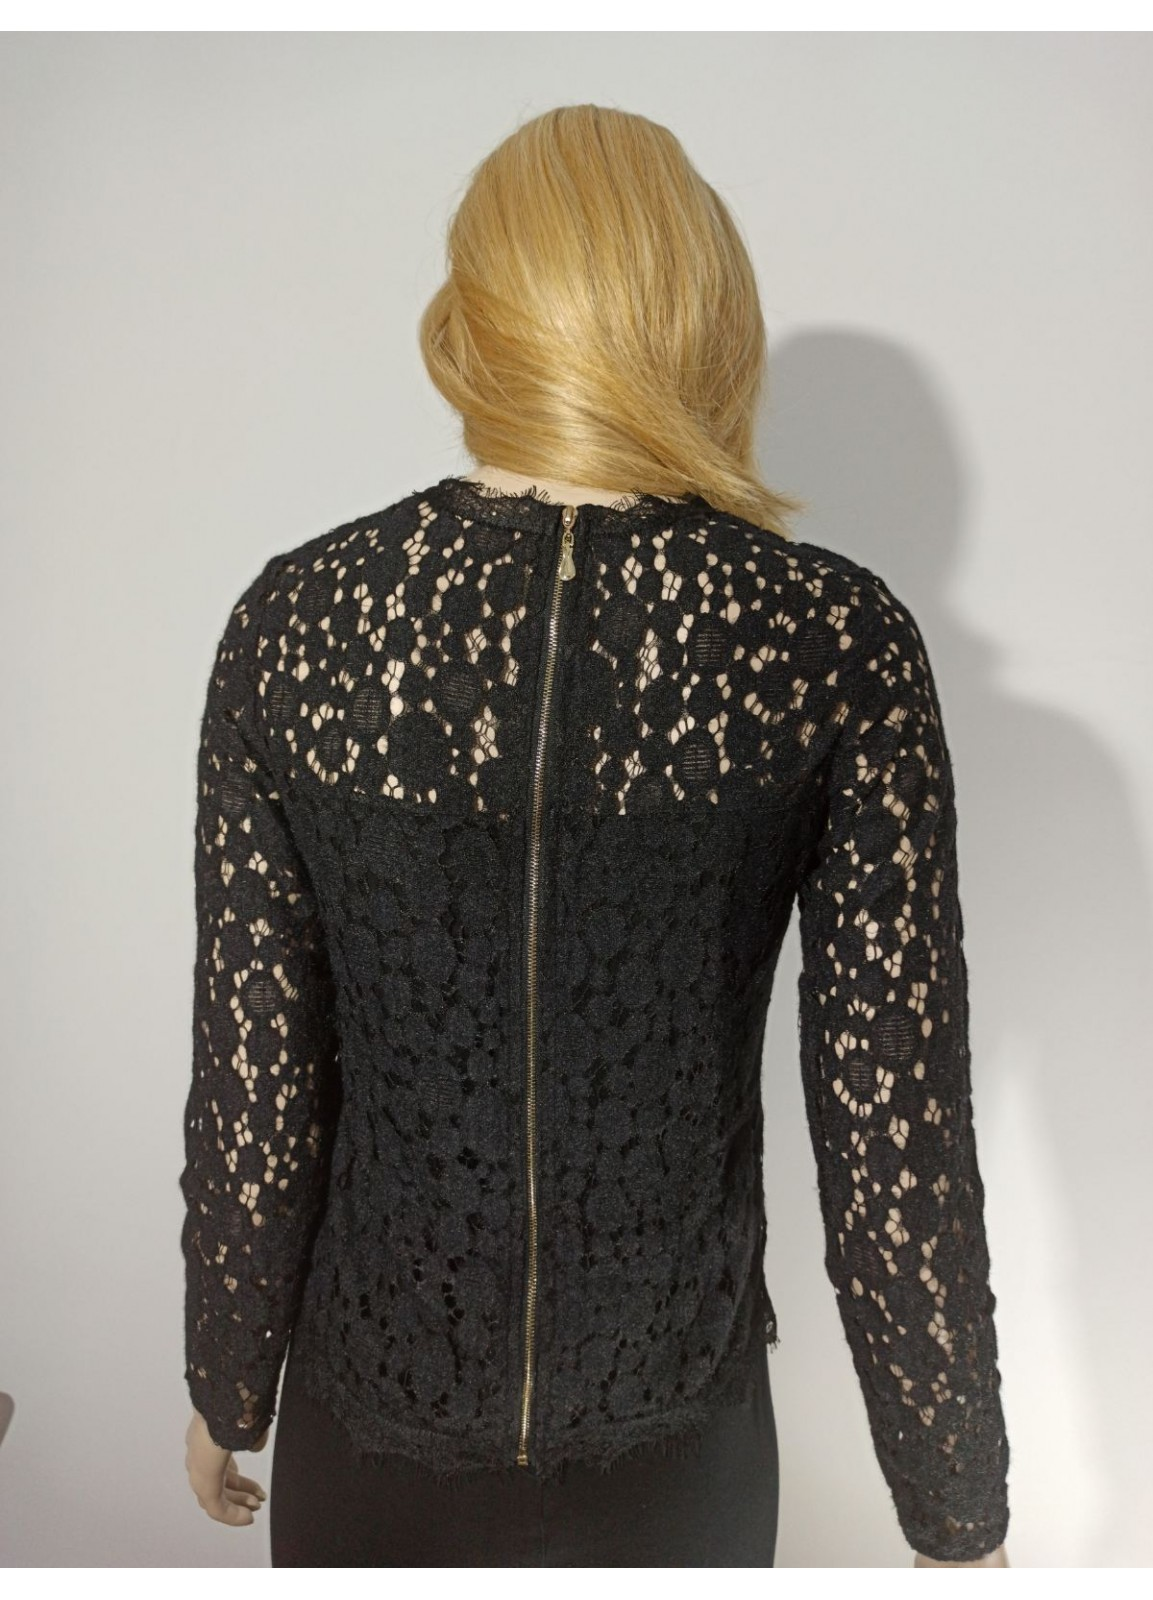 Lace blouse with long sleeve